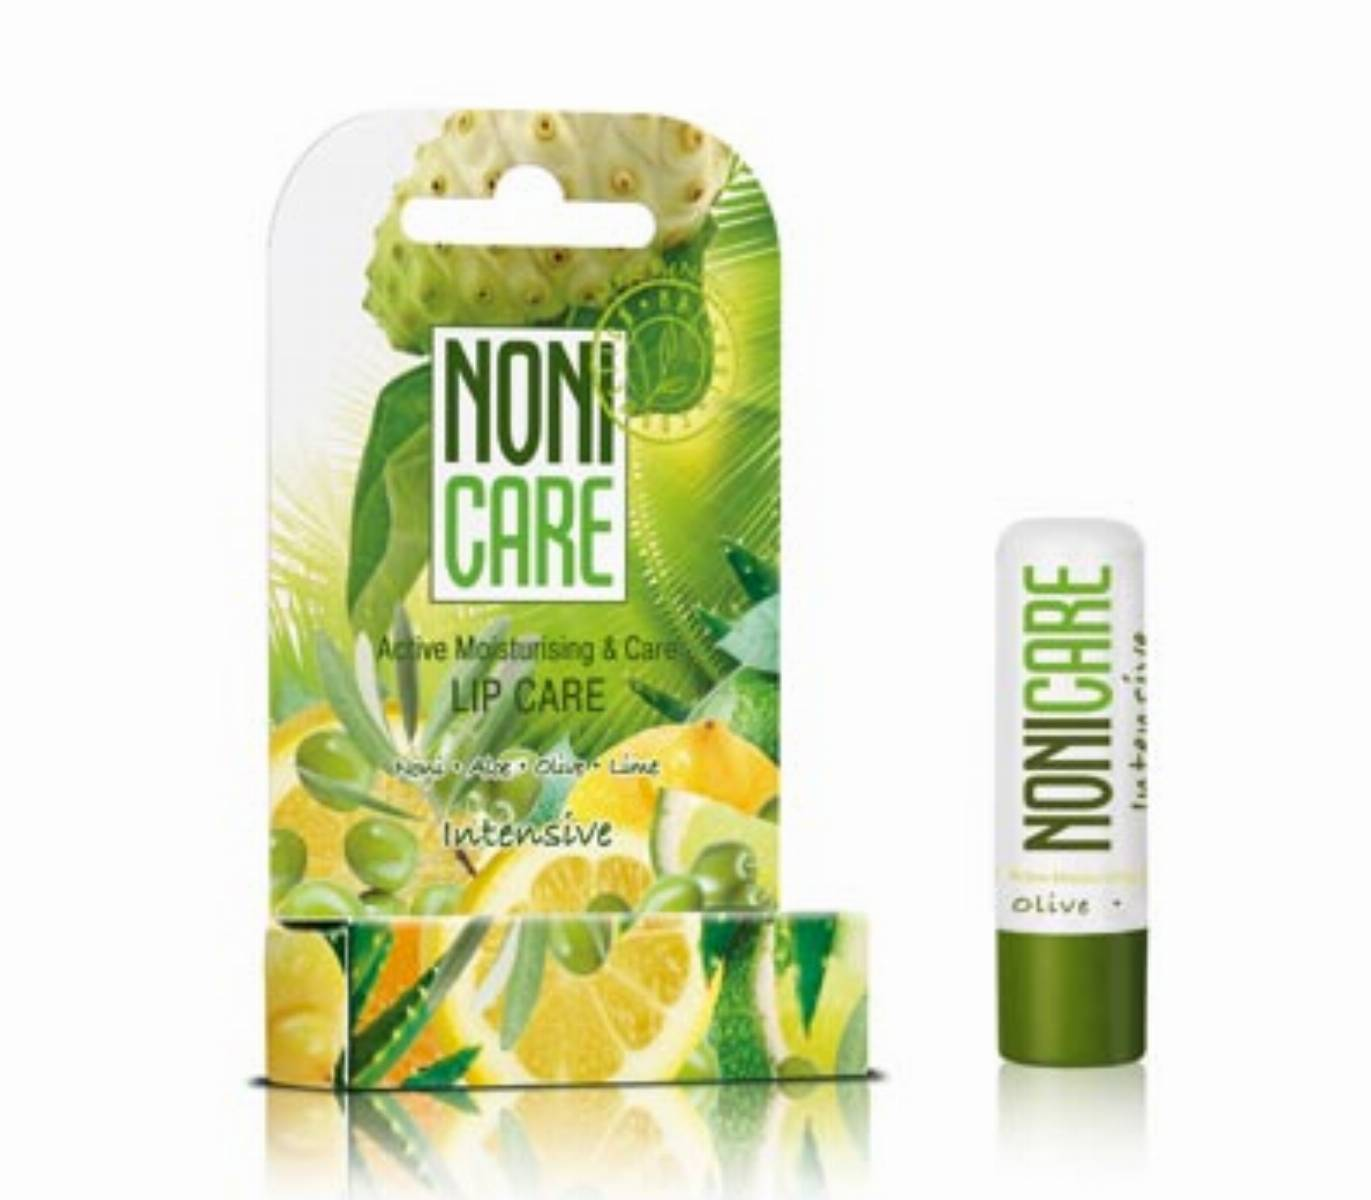 Pomadka ochronna Noni Care Intensive Active Moisturising & Care